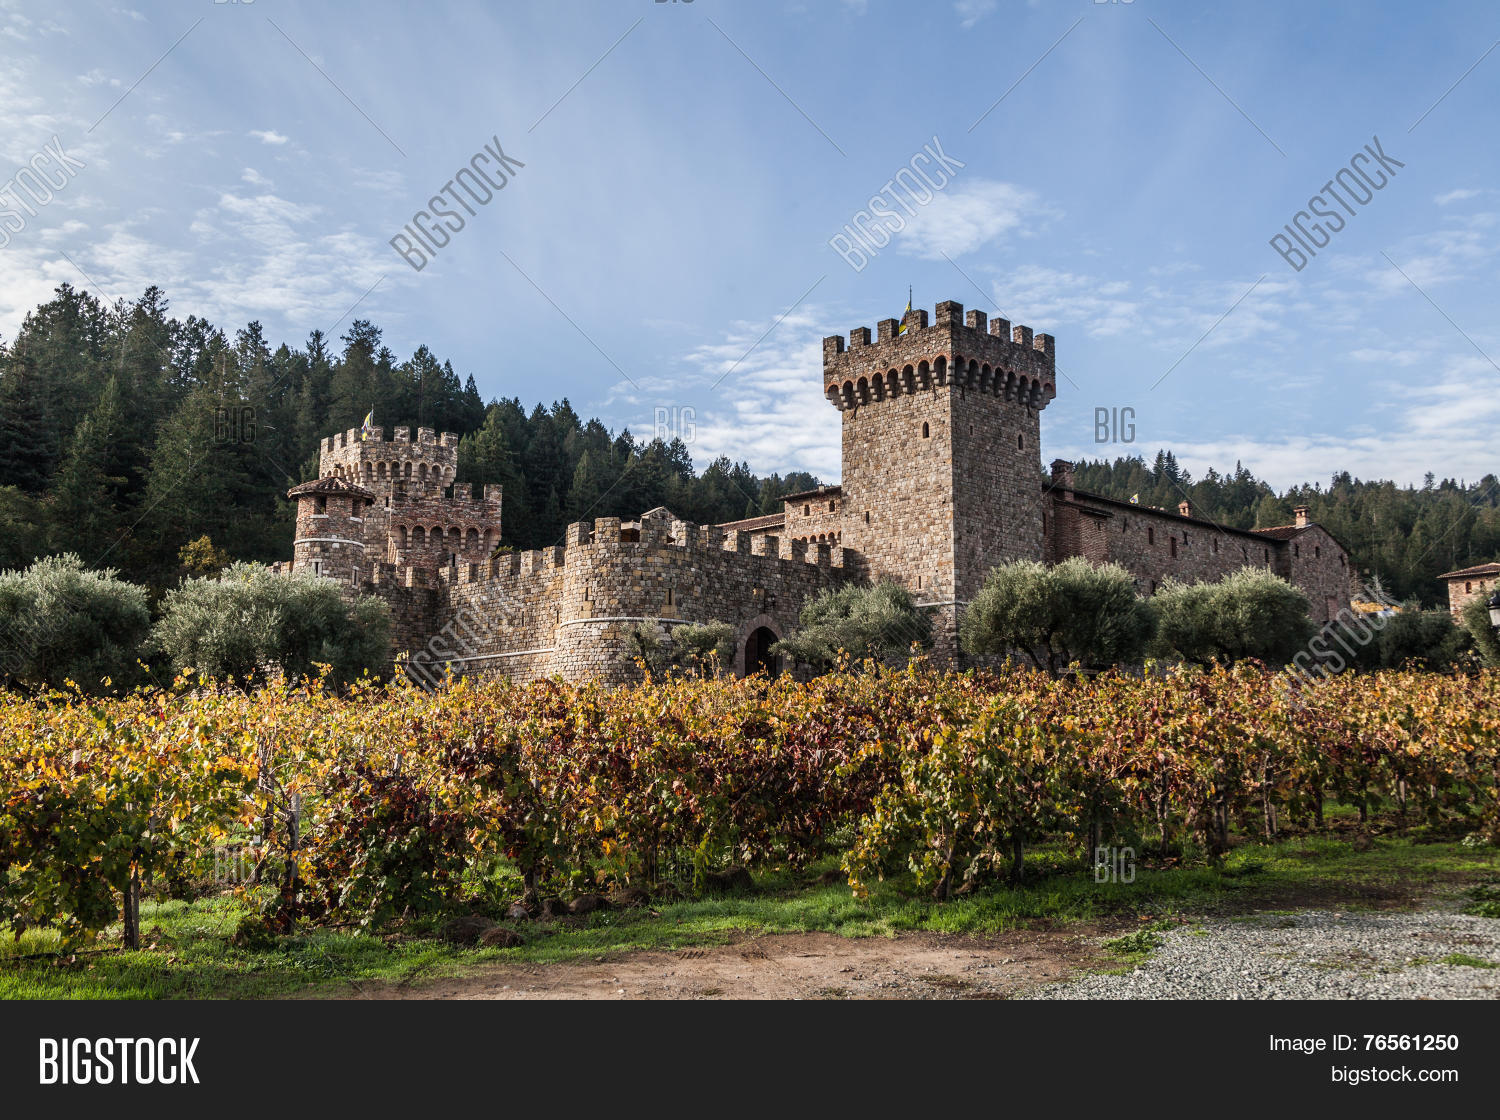 Castle Winery Image Photo Free Trial Bigstock